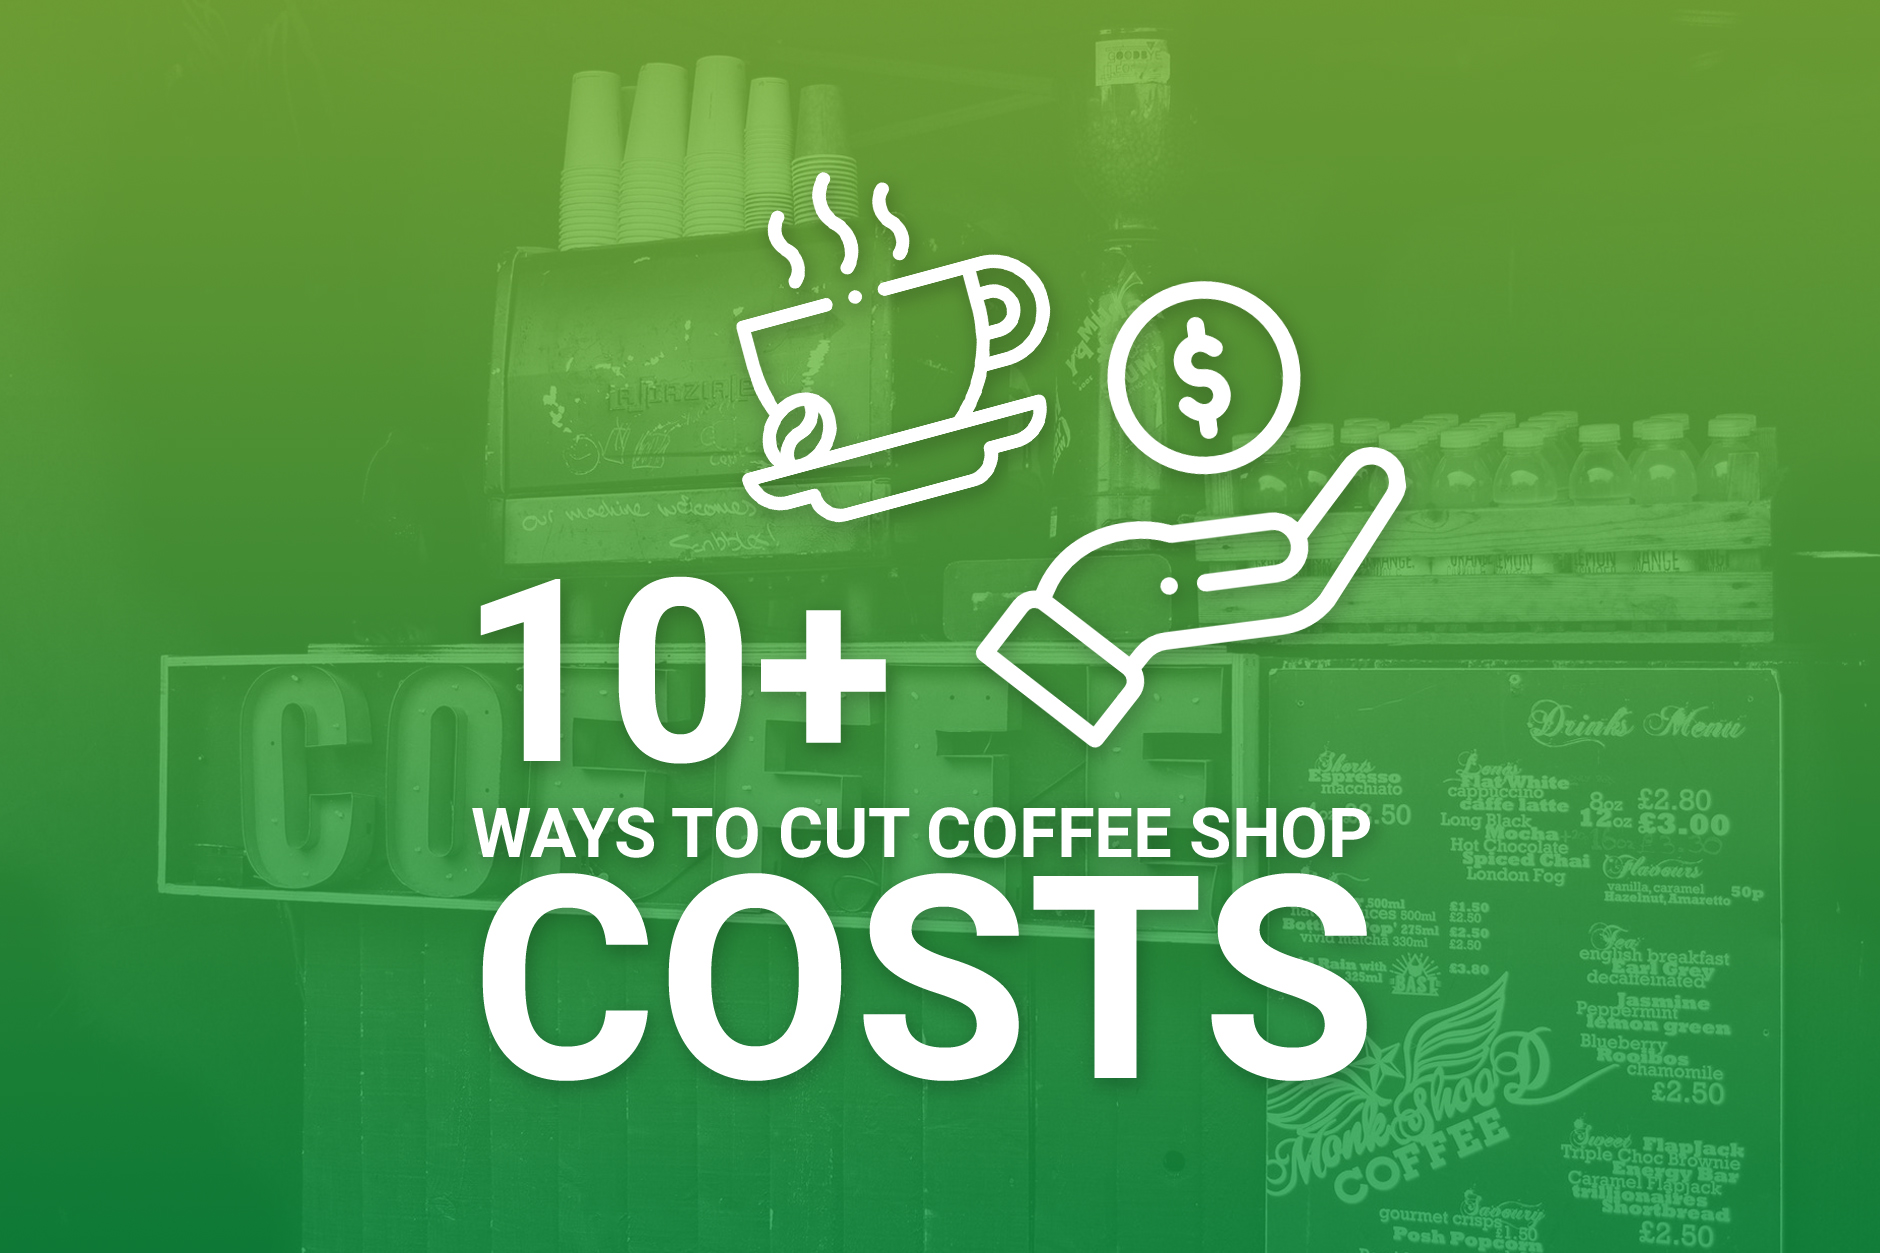 Coffee Shop Cost Cutting Techniques